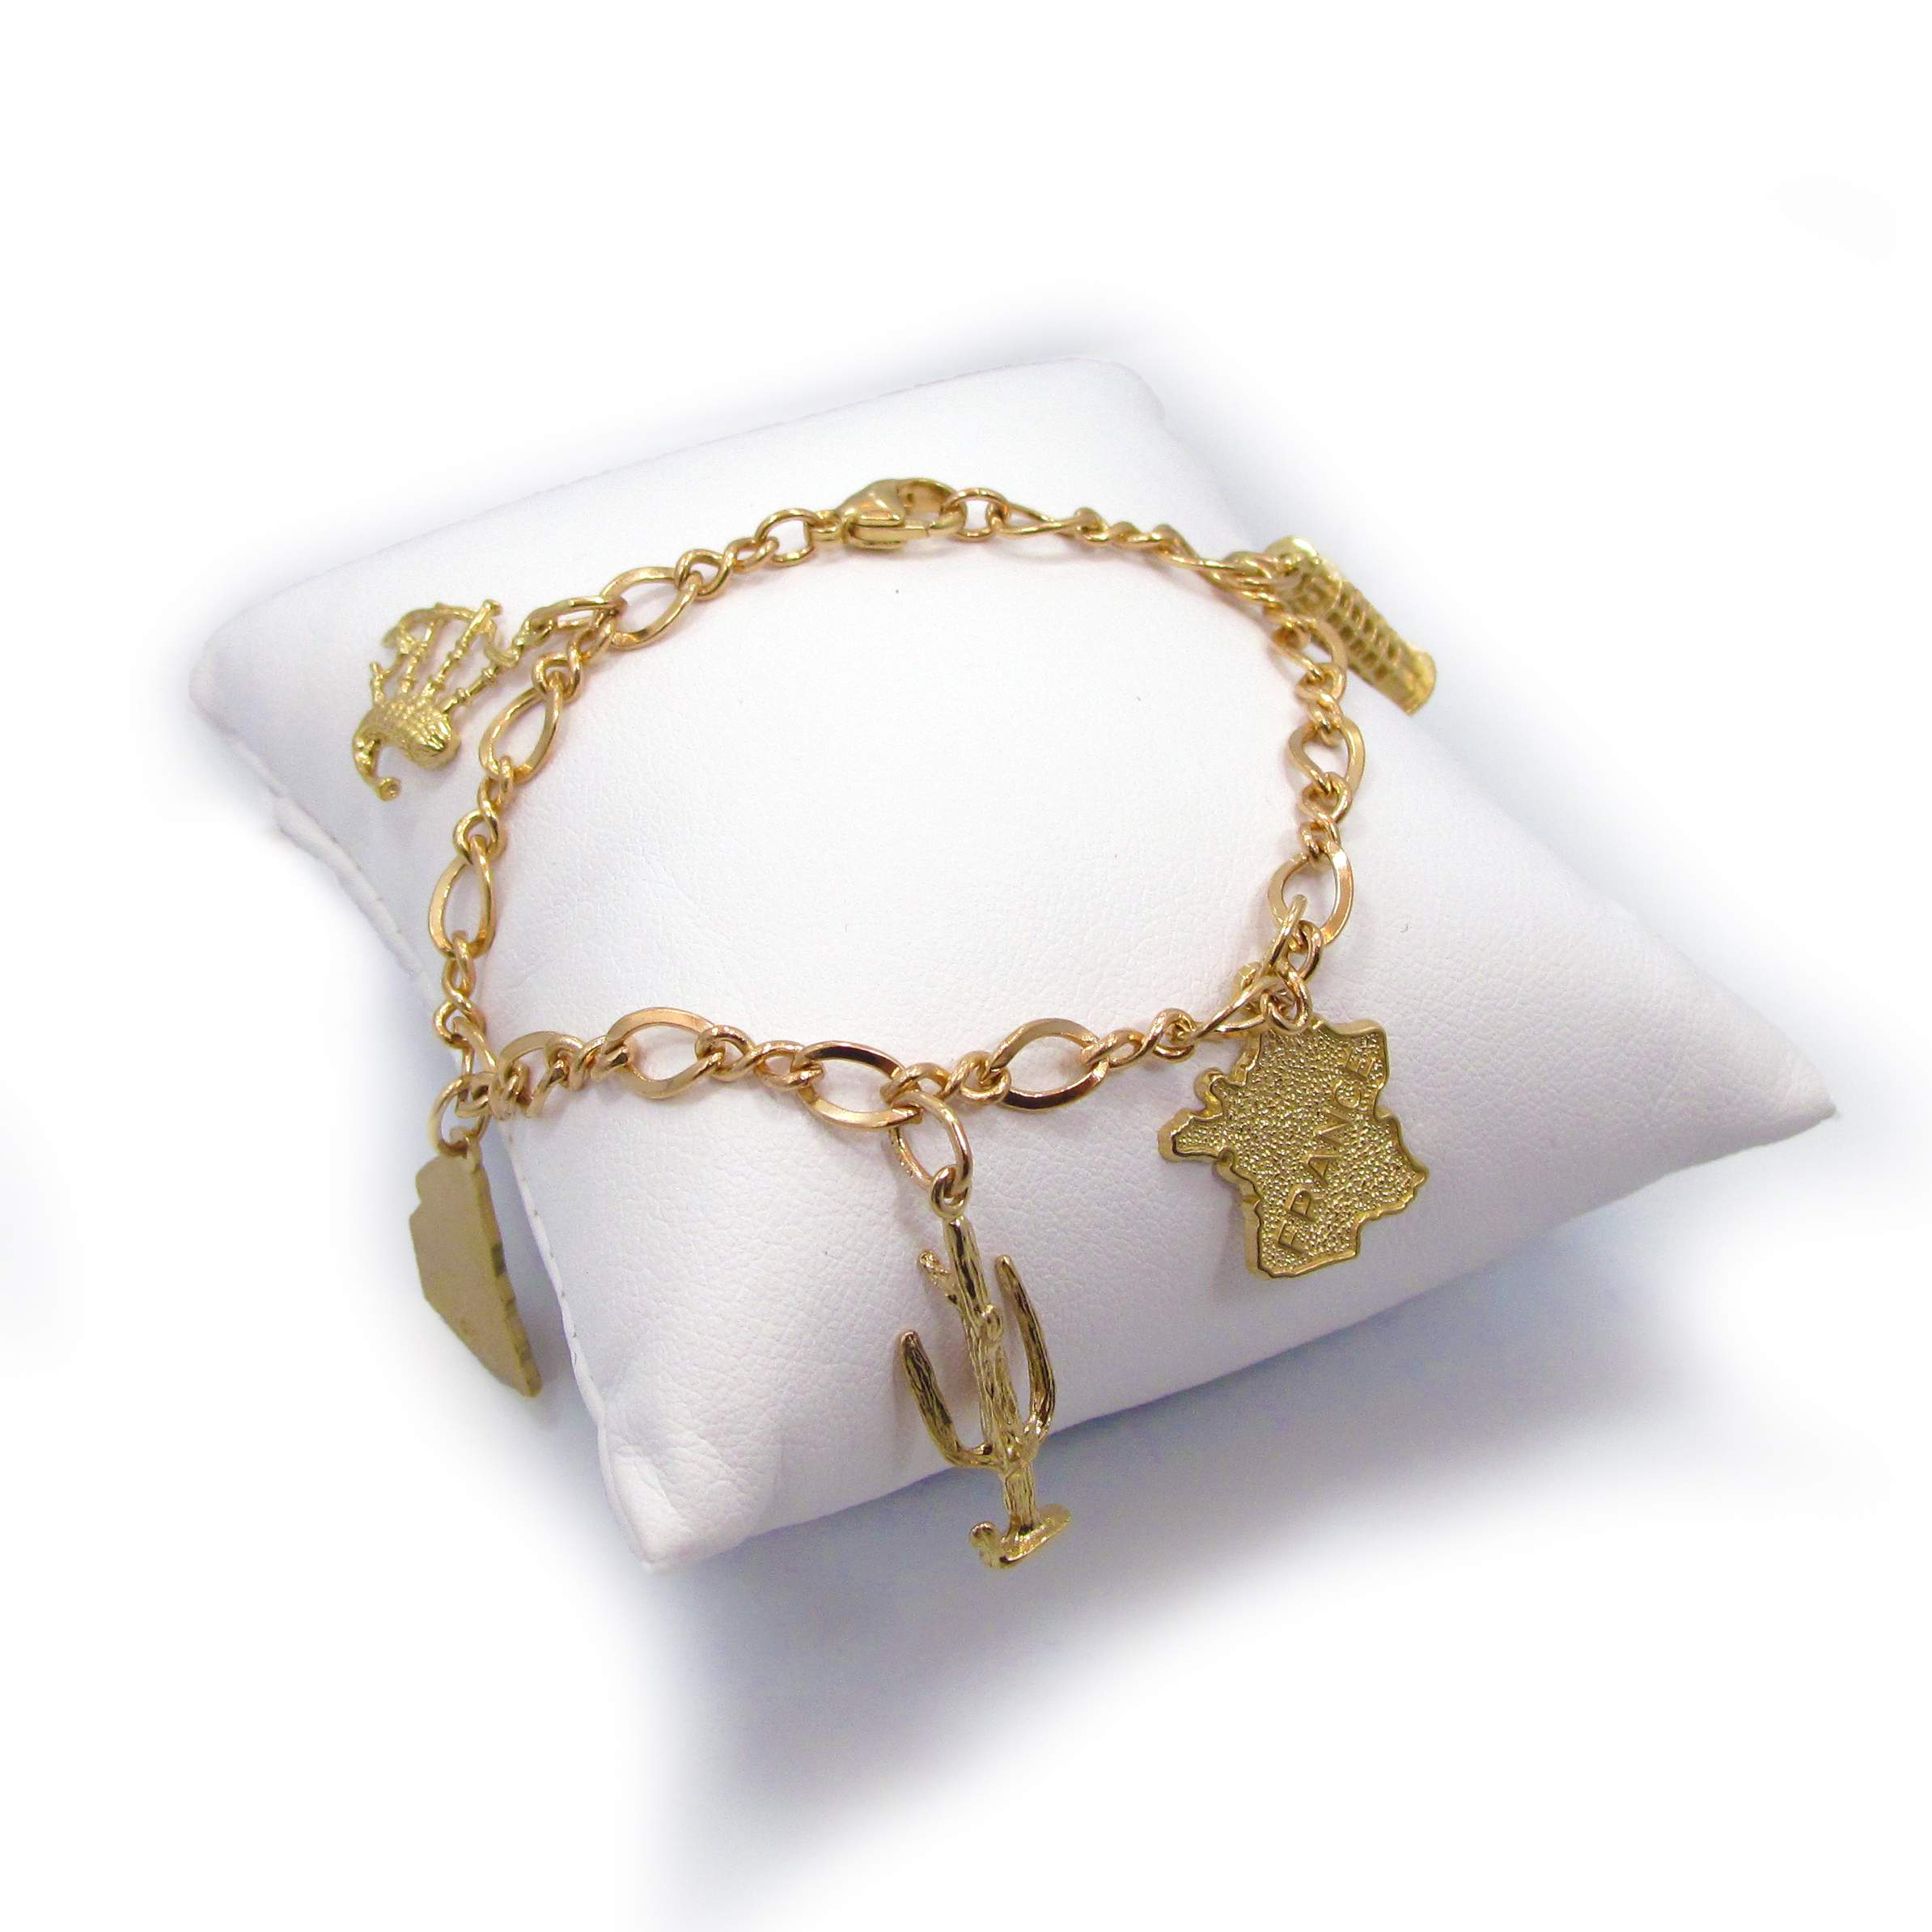 bracelet bone wikiwii jewelry charm products jewellery